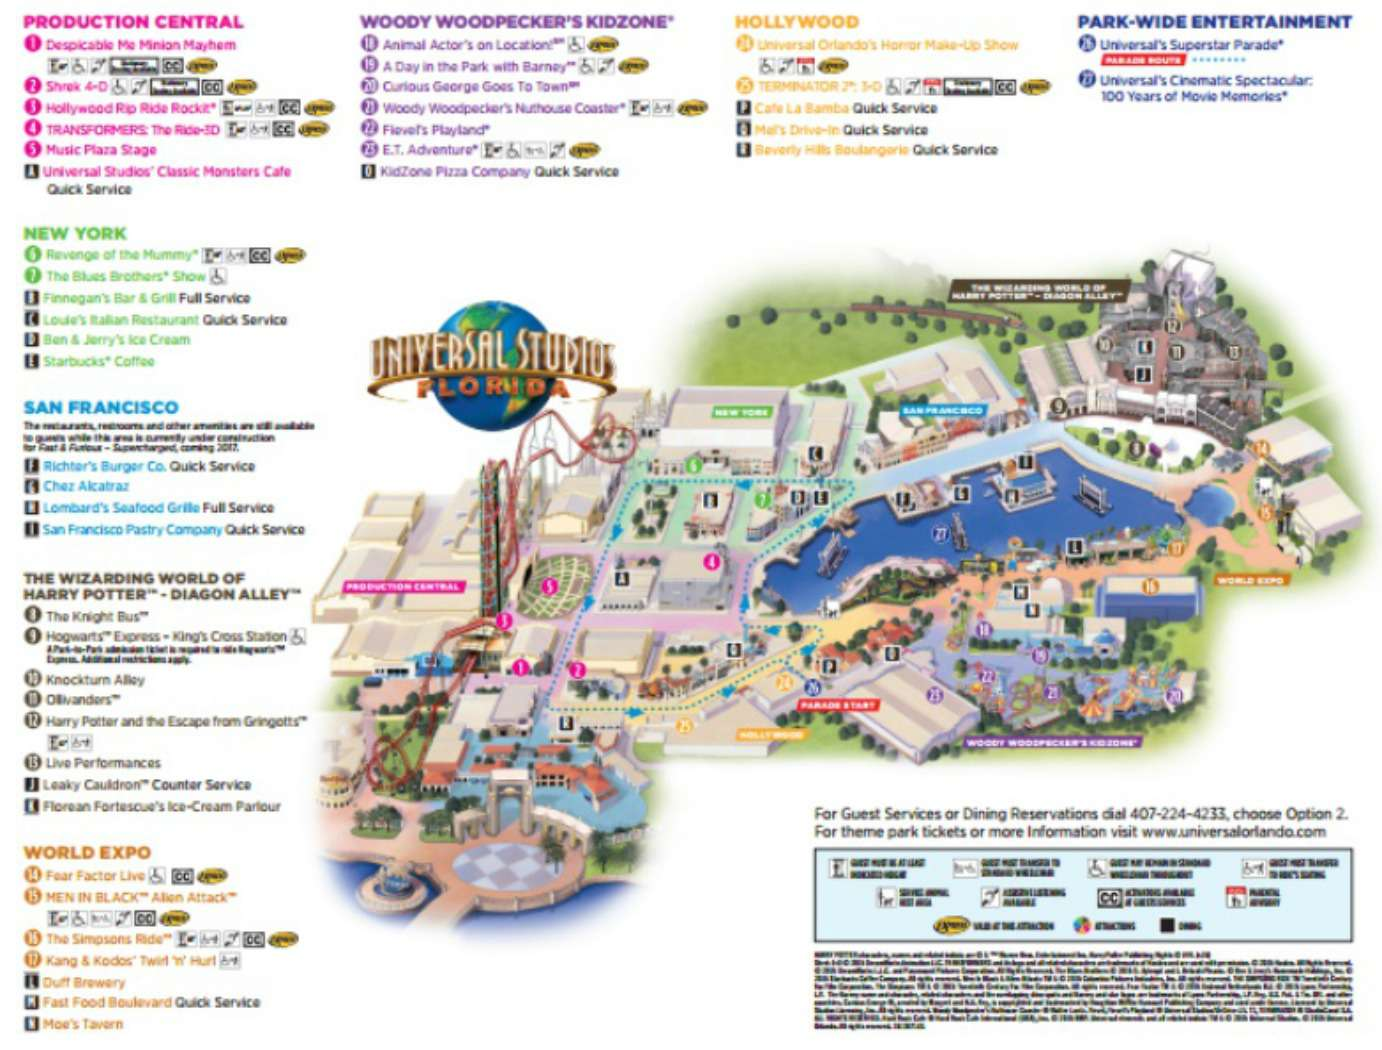 Maps of Universal Orlando Resort's Parks and Hotels